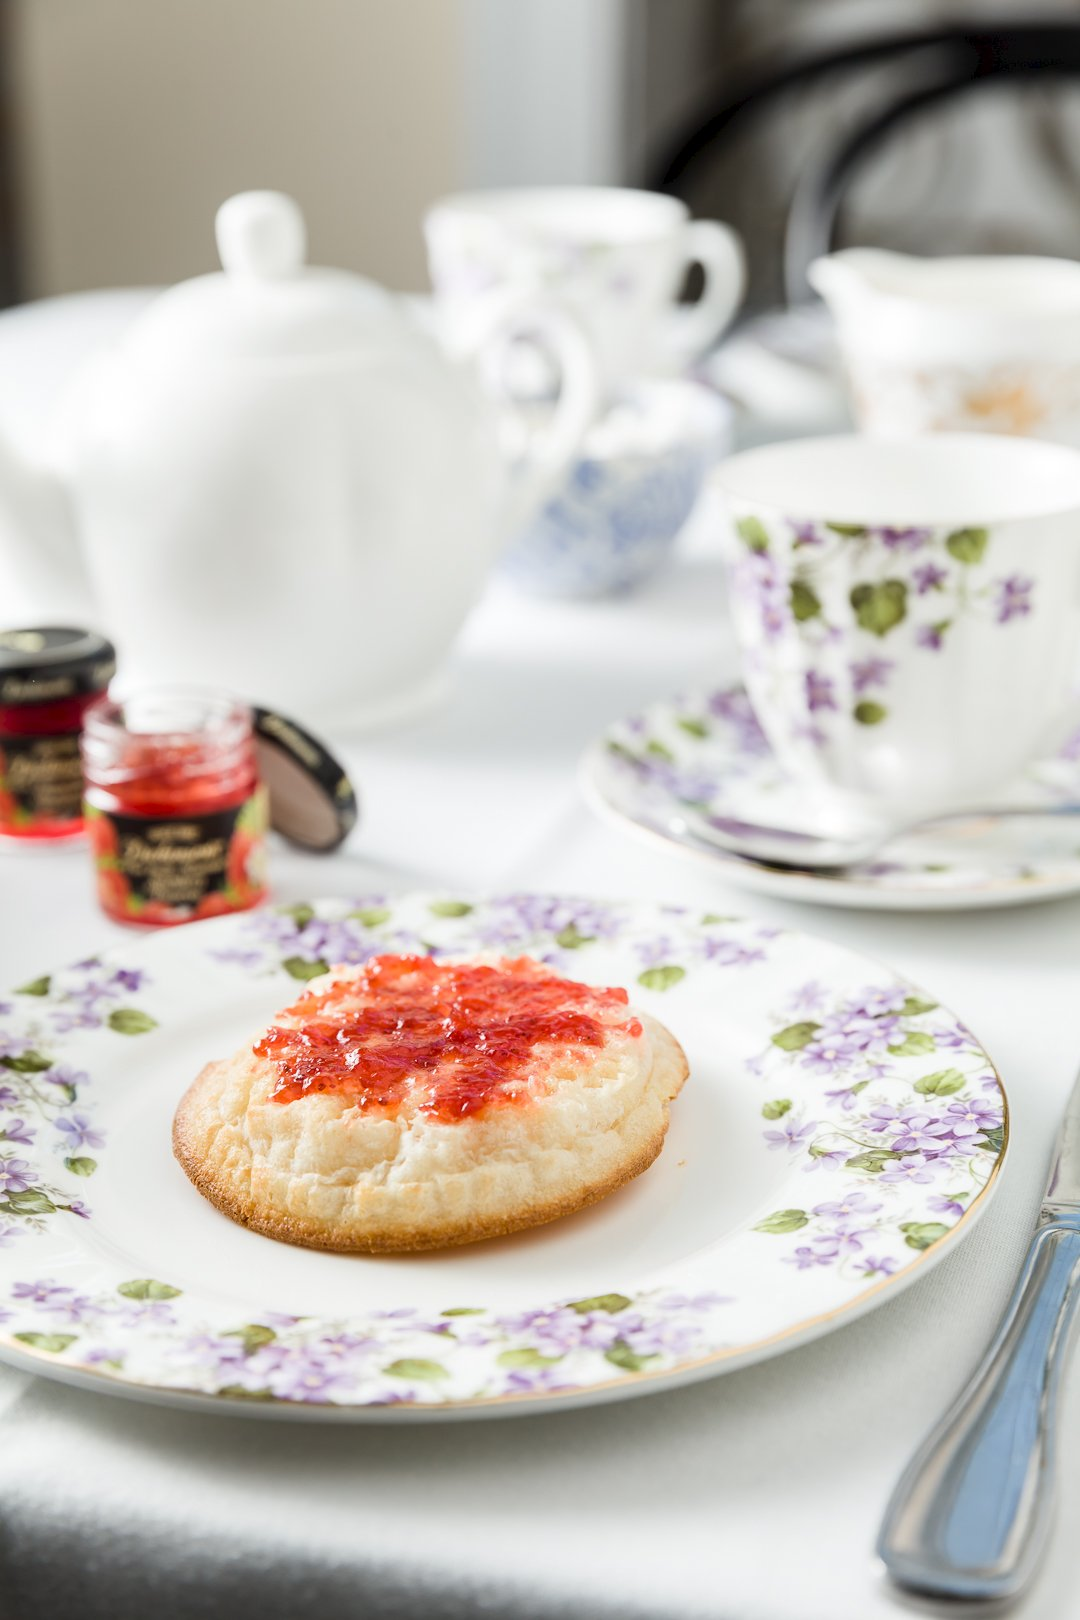 All About Crumpets